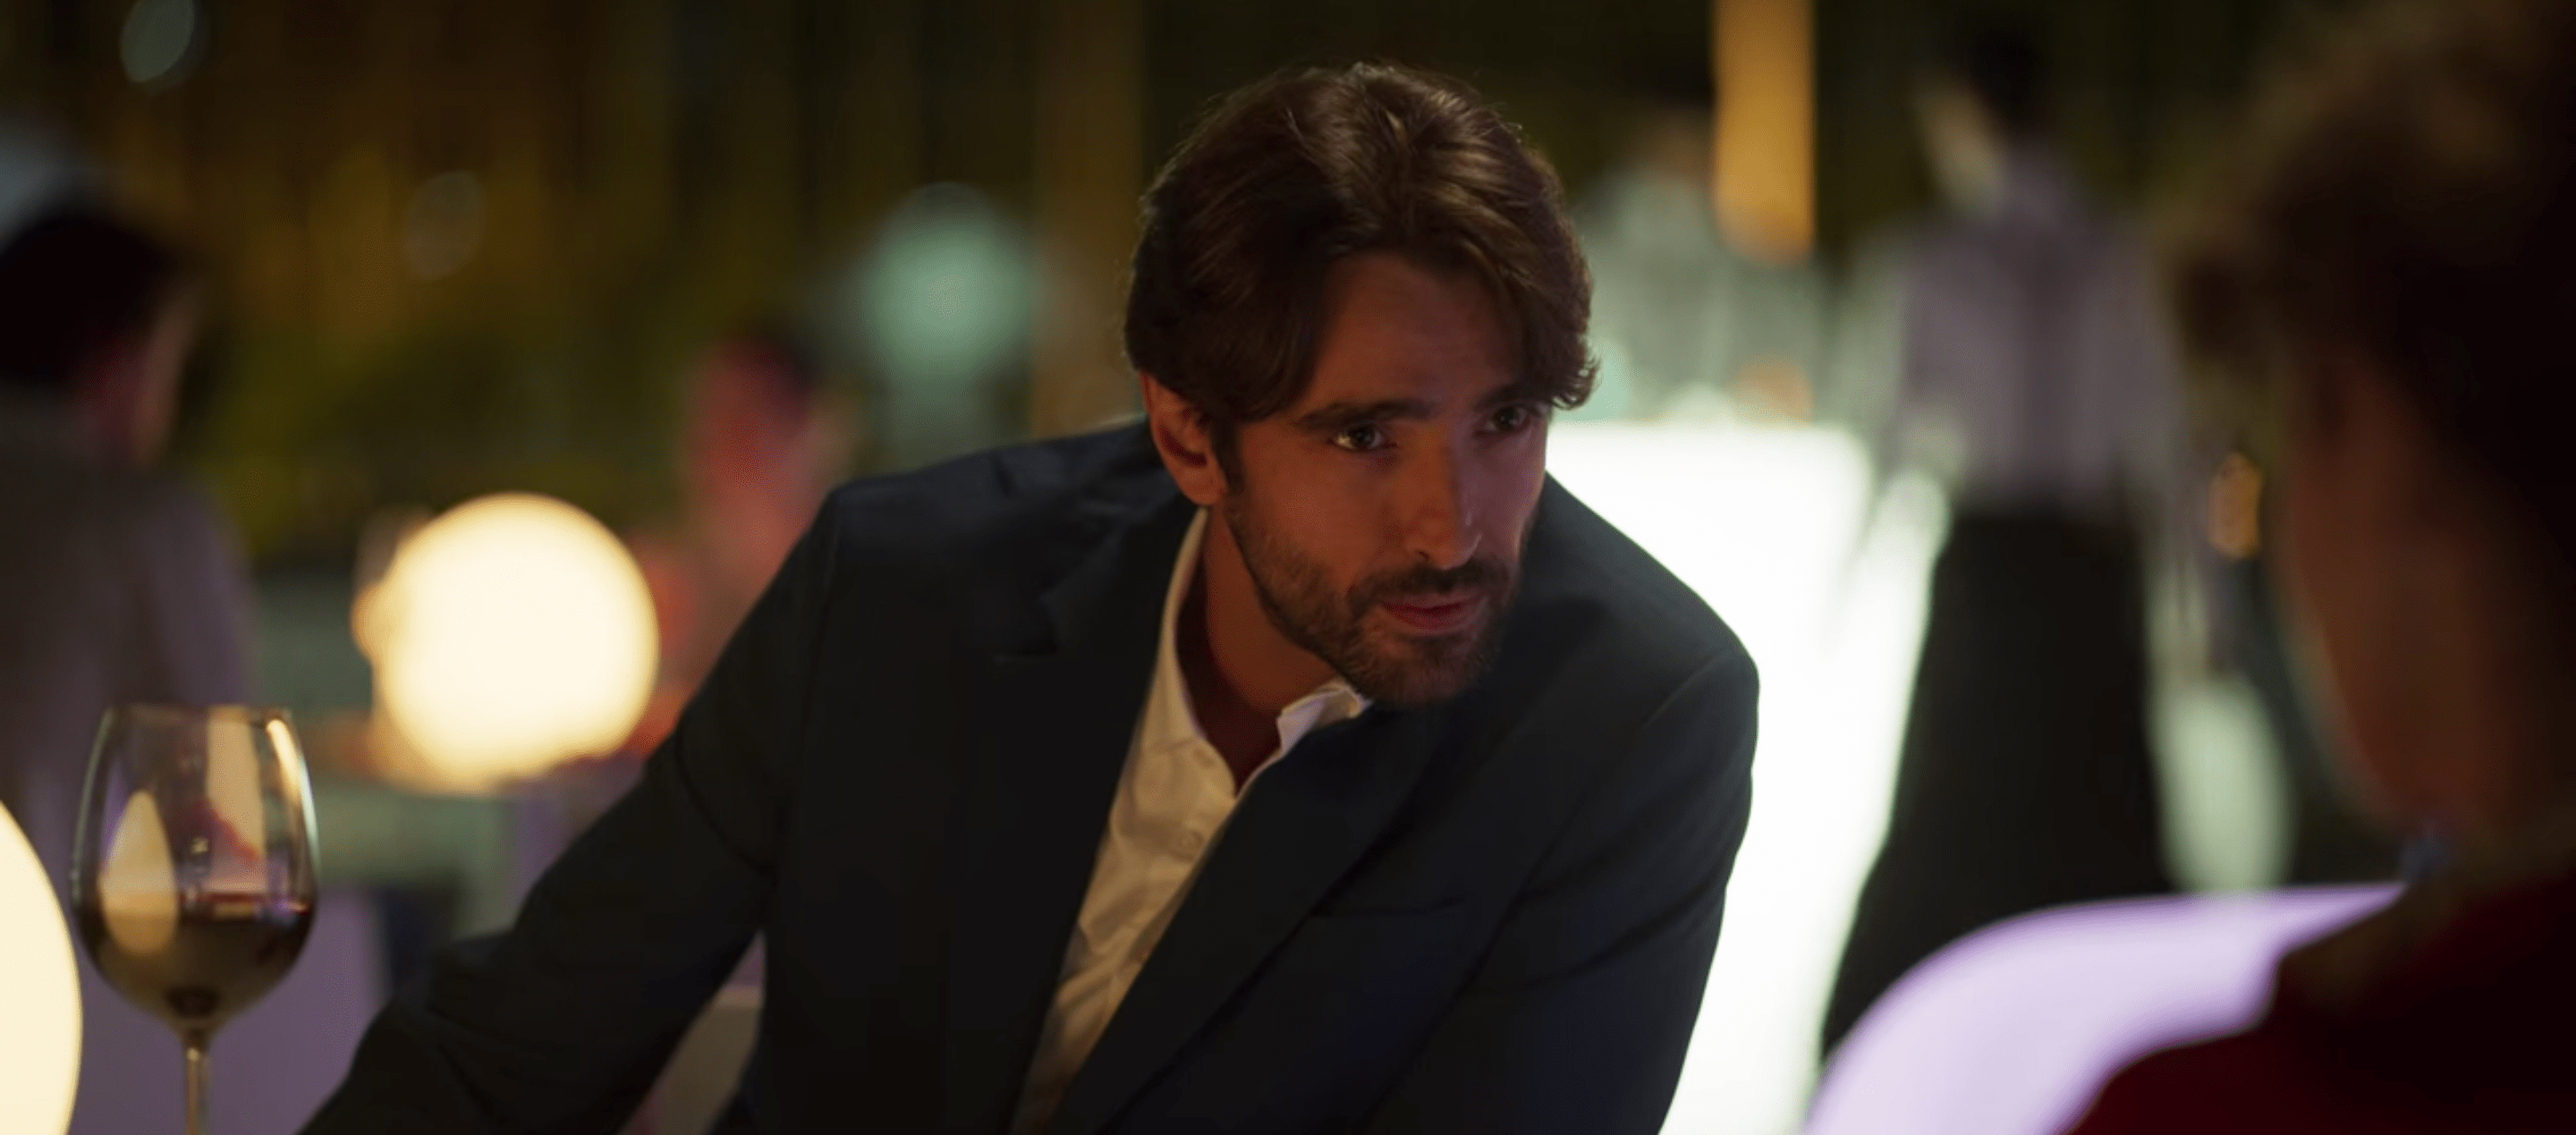 Sergio, a white man with dark hair and a scruffy beard, wearing dark blue suit jacket over a white button down leaning toward Lola over an outside table.